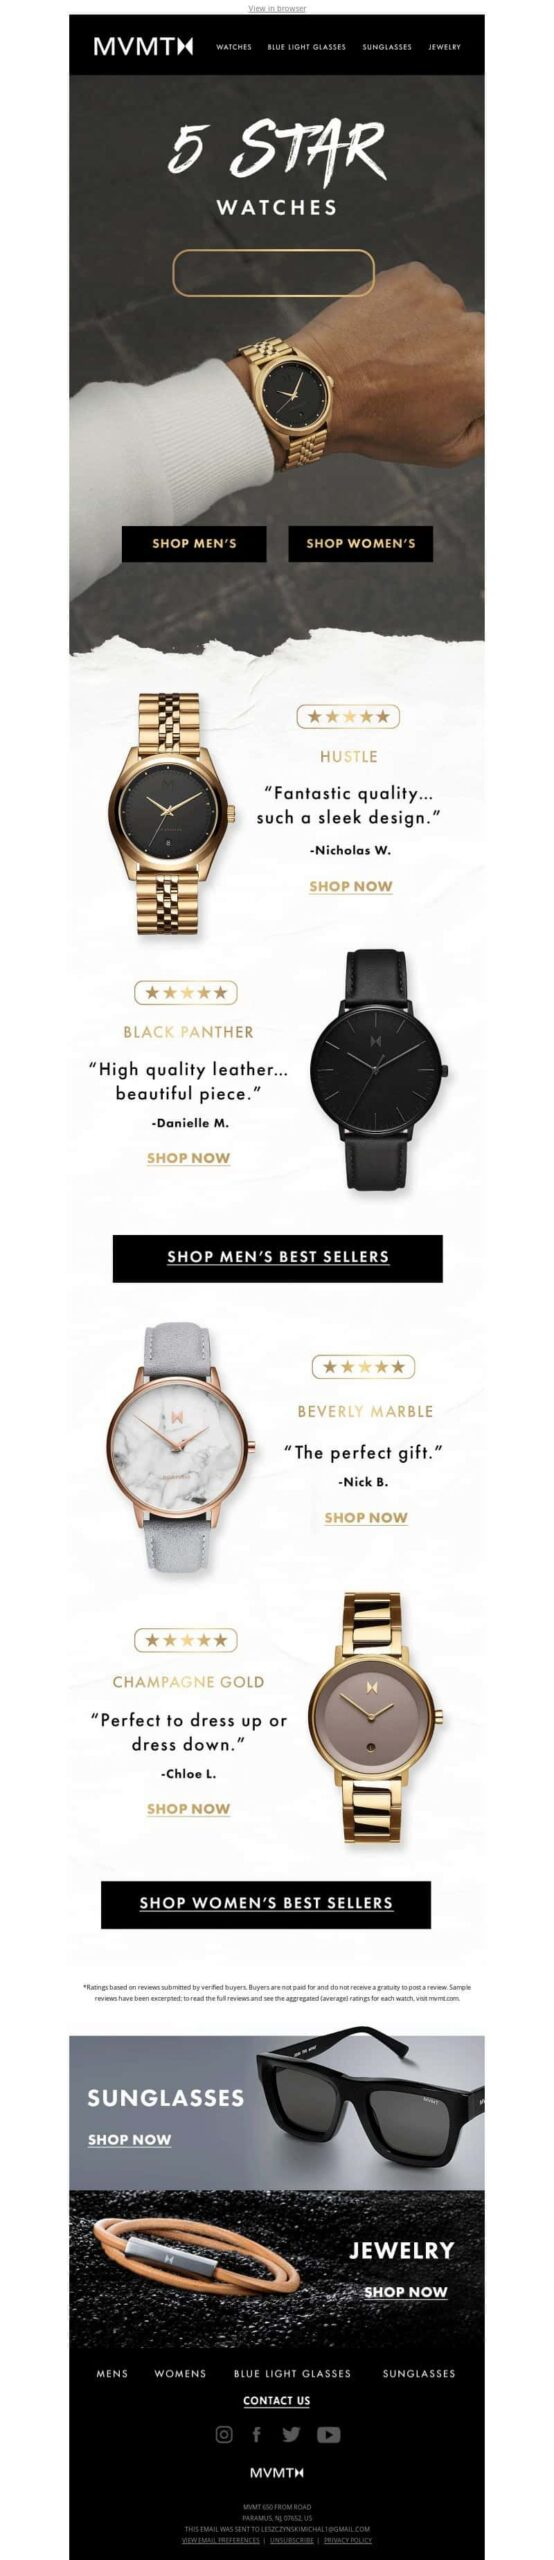 Promotional email featuring best selling watches from MVMT.